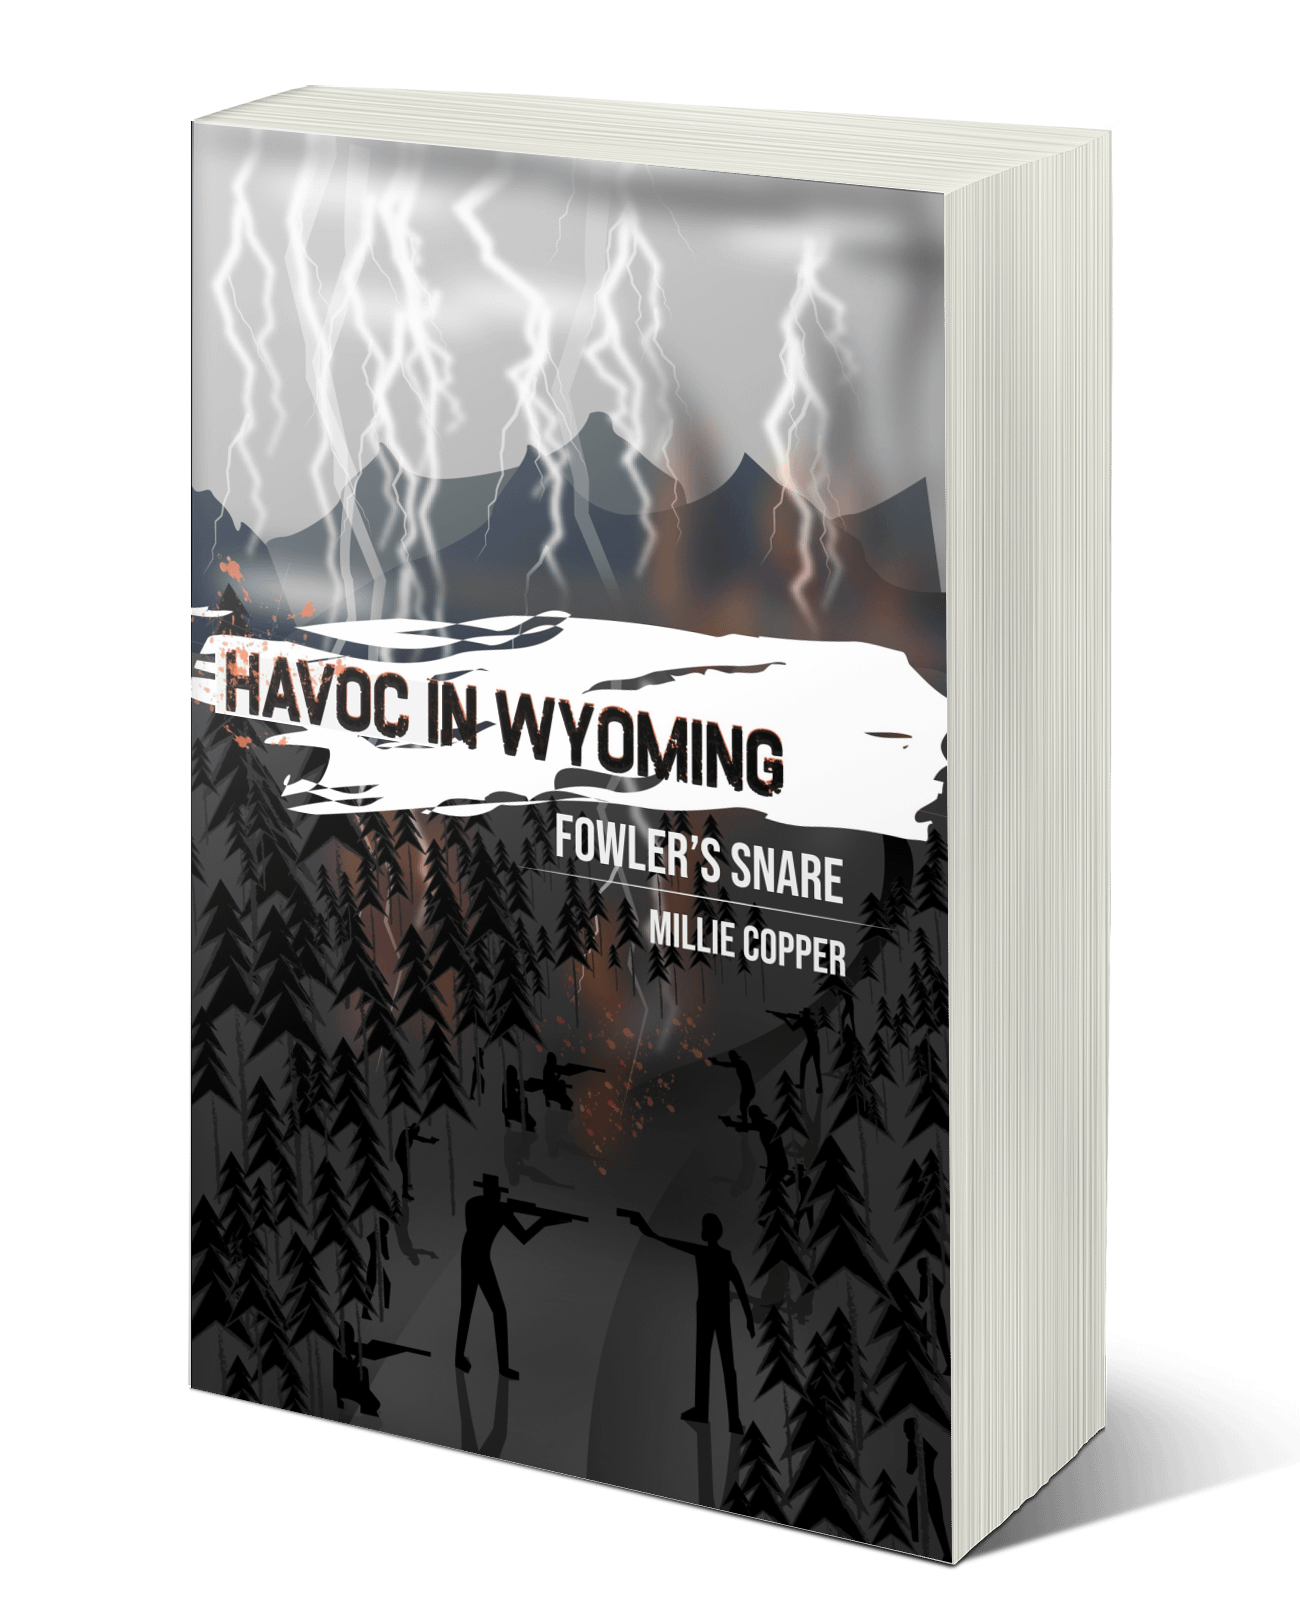 Fowler's Snare: Havoc in Wyoming, Part 5